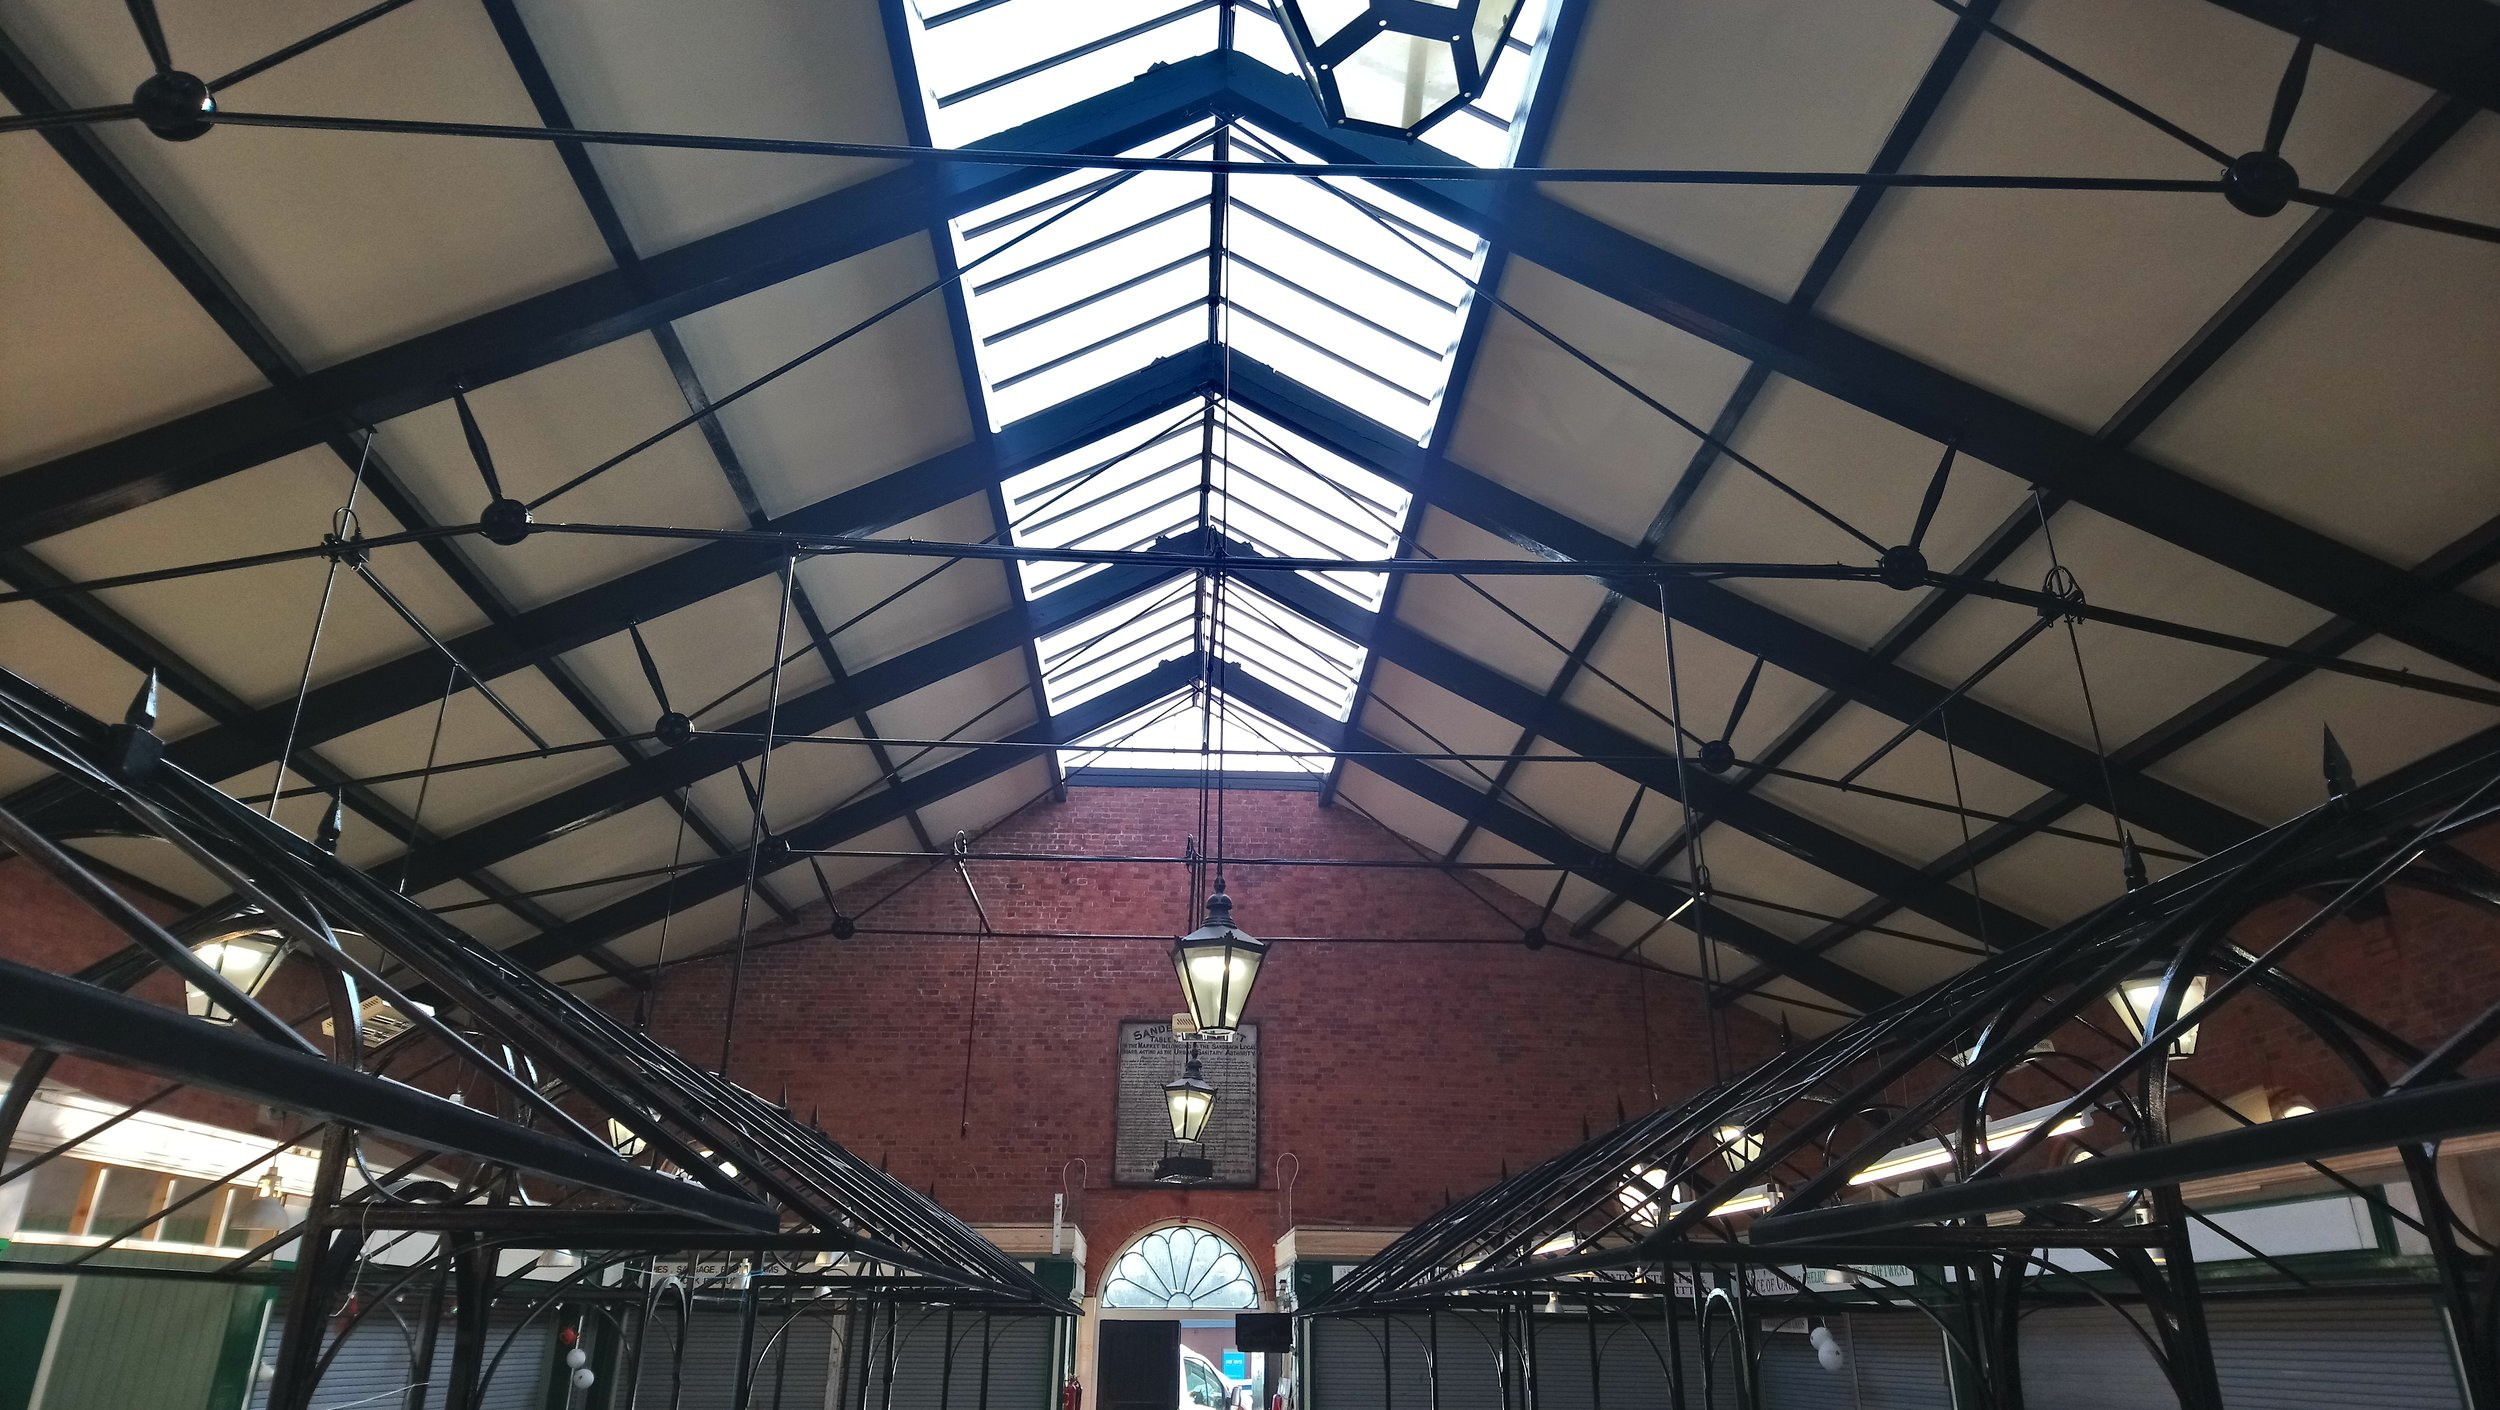 Week 5 - The Scaffolding is now down and the Ceiling has been decorated, with the new lights installed.